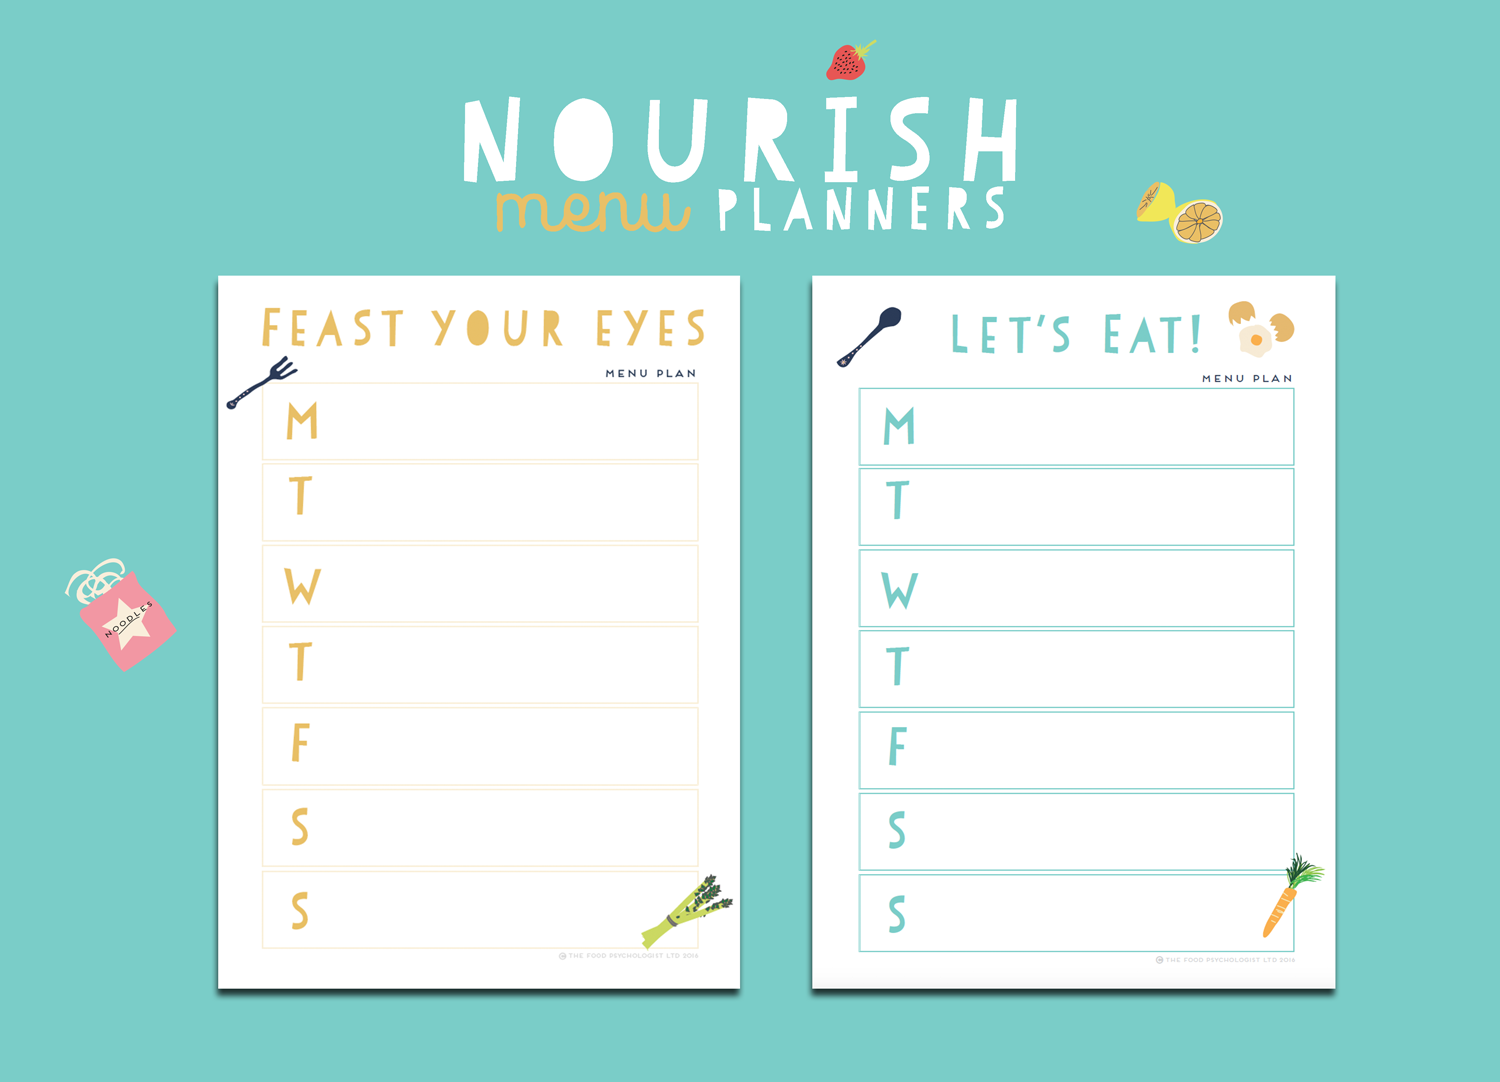 Nourish Menu Planner & Kitchen Kit – The Food Psychologist